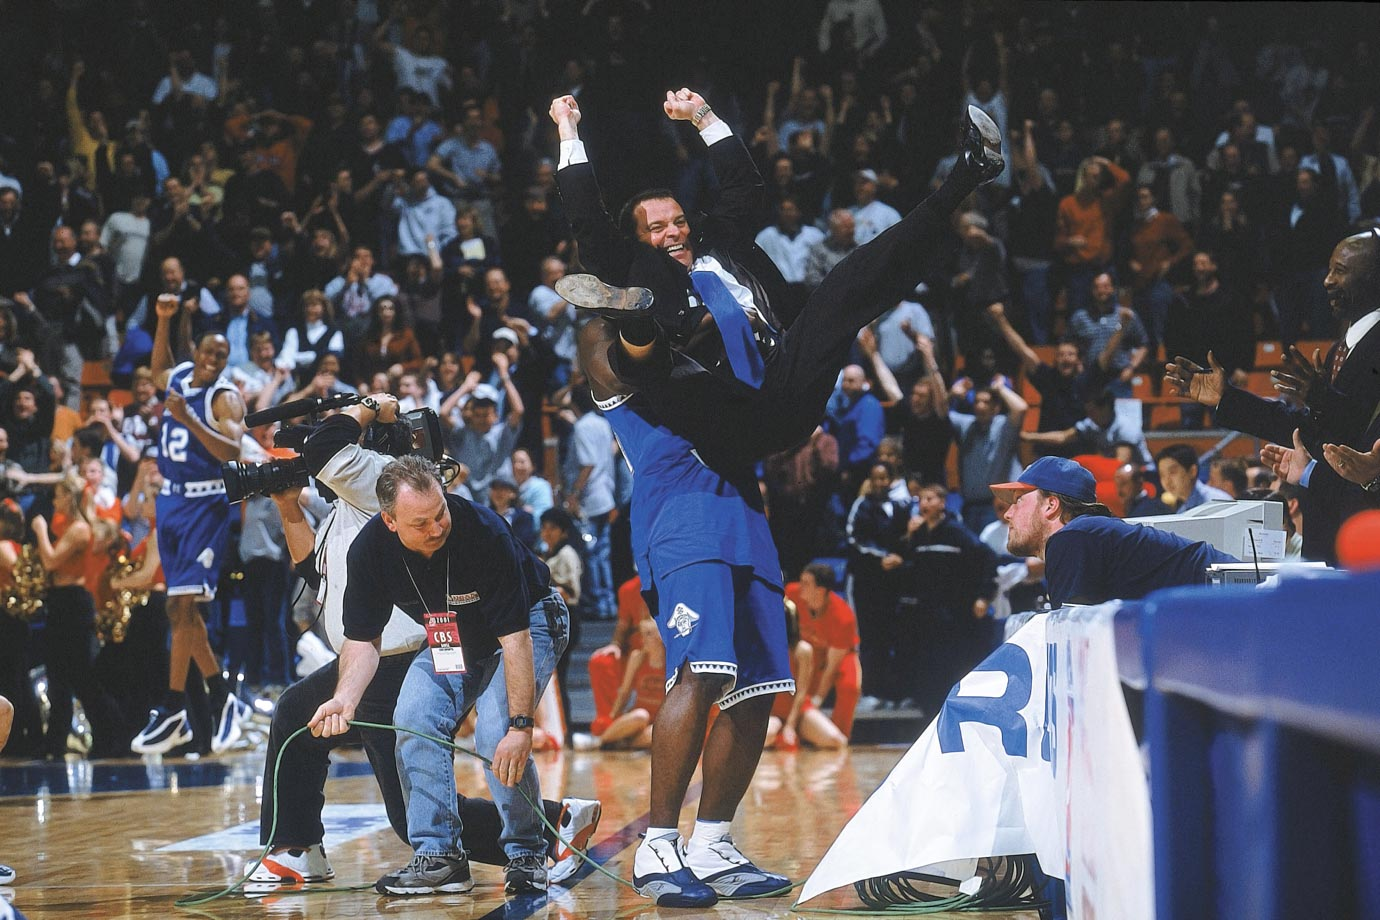 This first-round shocker produced one of the most indelible images in NCAA tournament history: Hampton coach Steve Merfeld pumping his arms and legs in jubilation as a player lifts him off the ground following the 15th-seeded Pirates 58-57 victory over the No. 2 Cyclones.